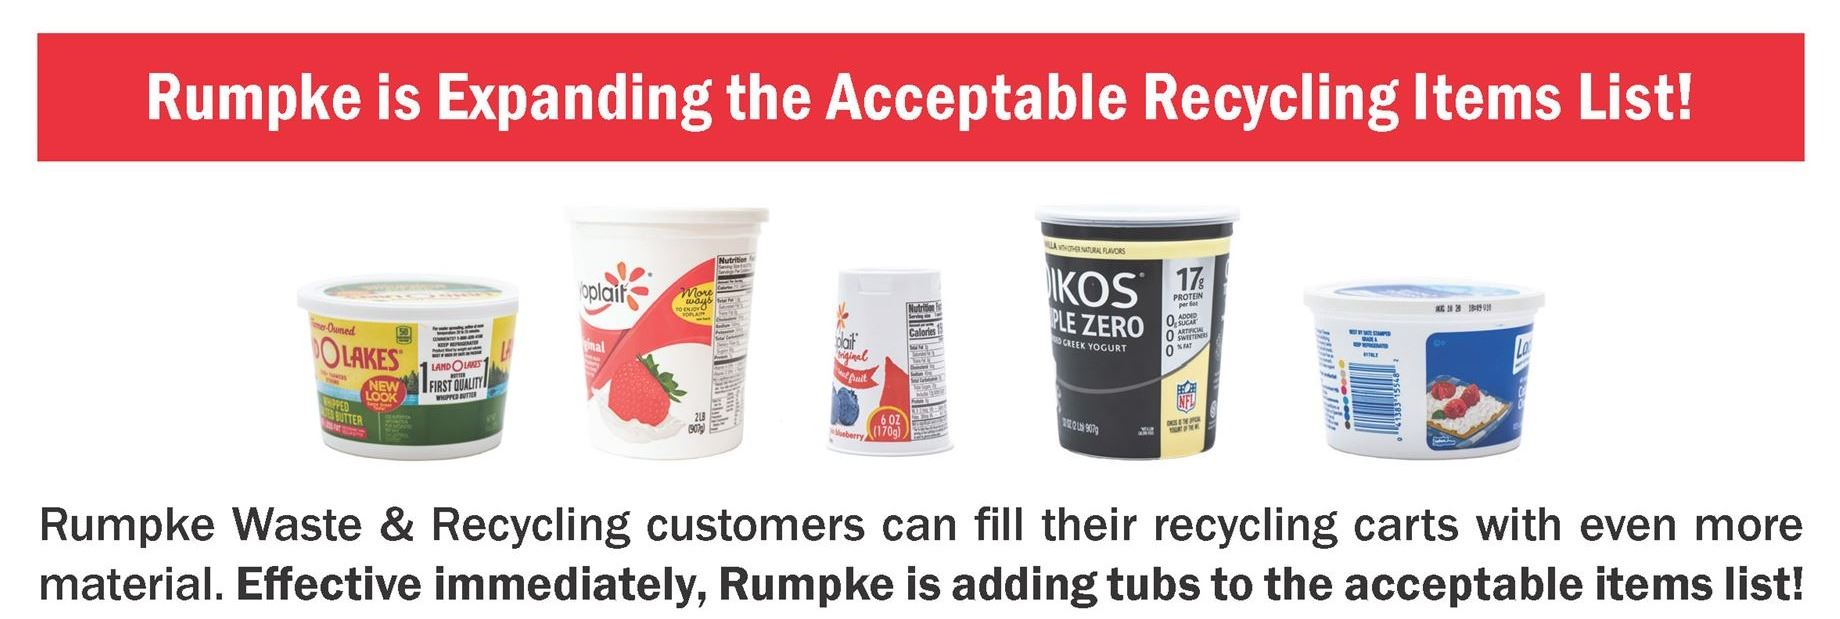 Rumpke Tubs Fact Sheet